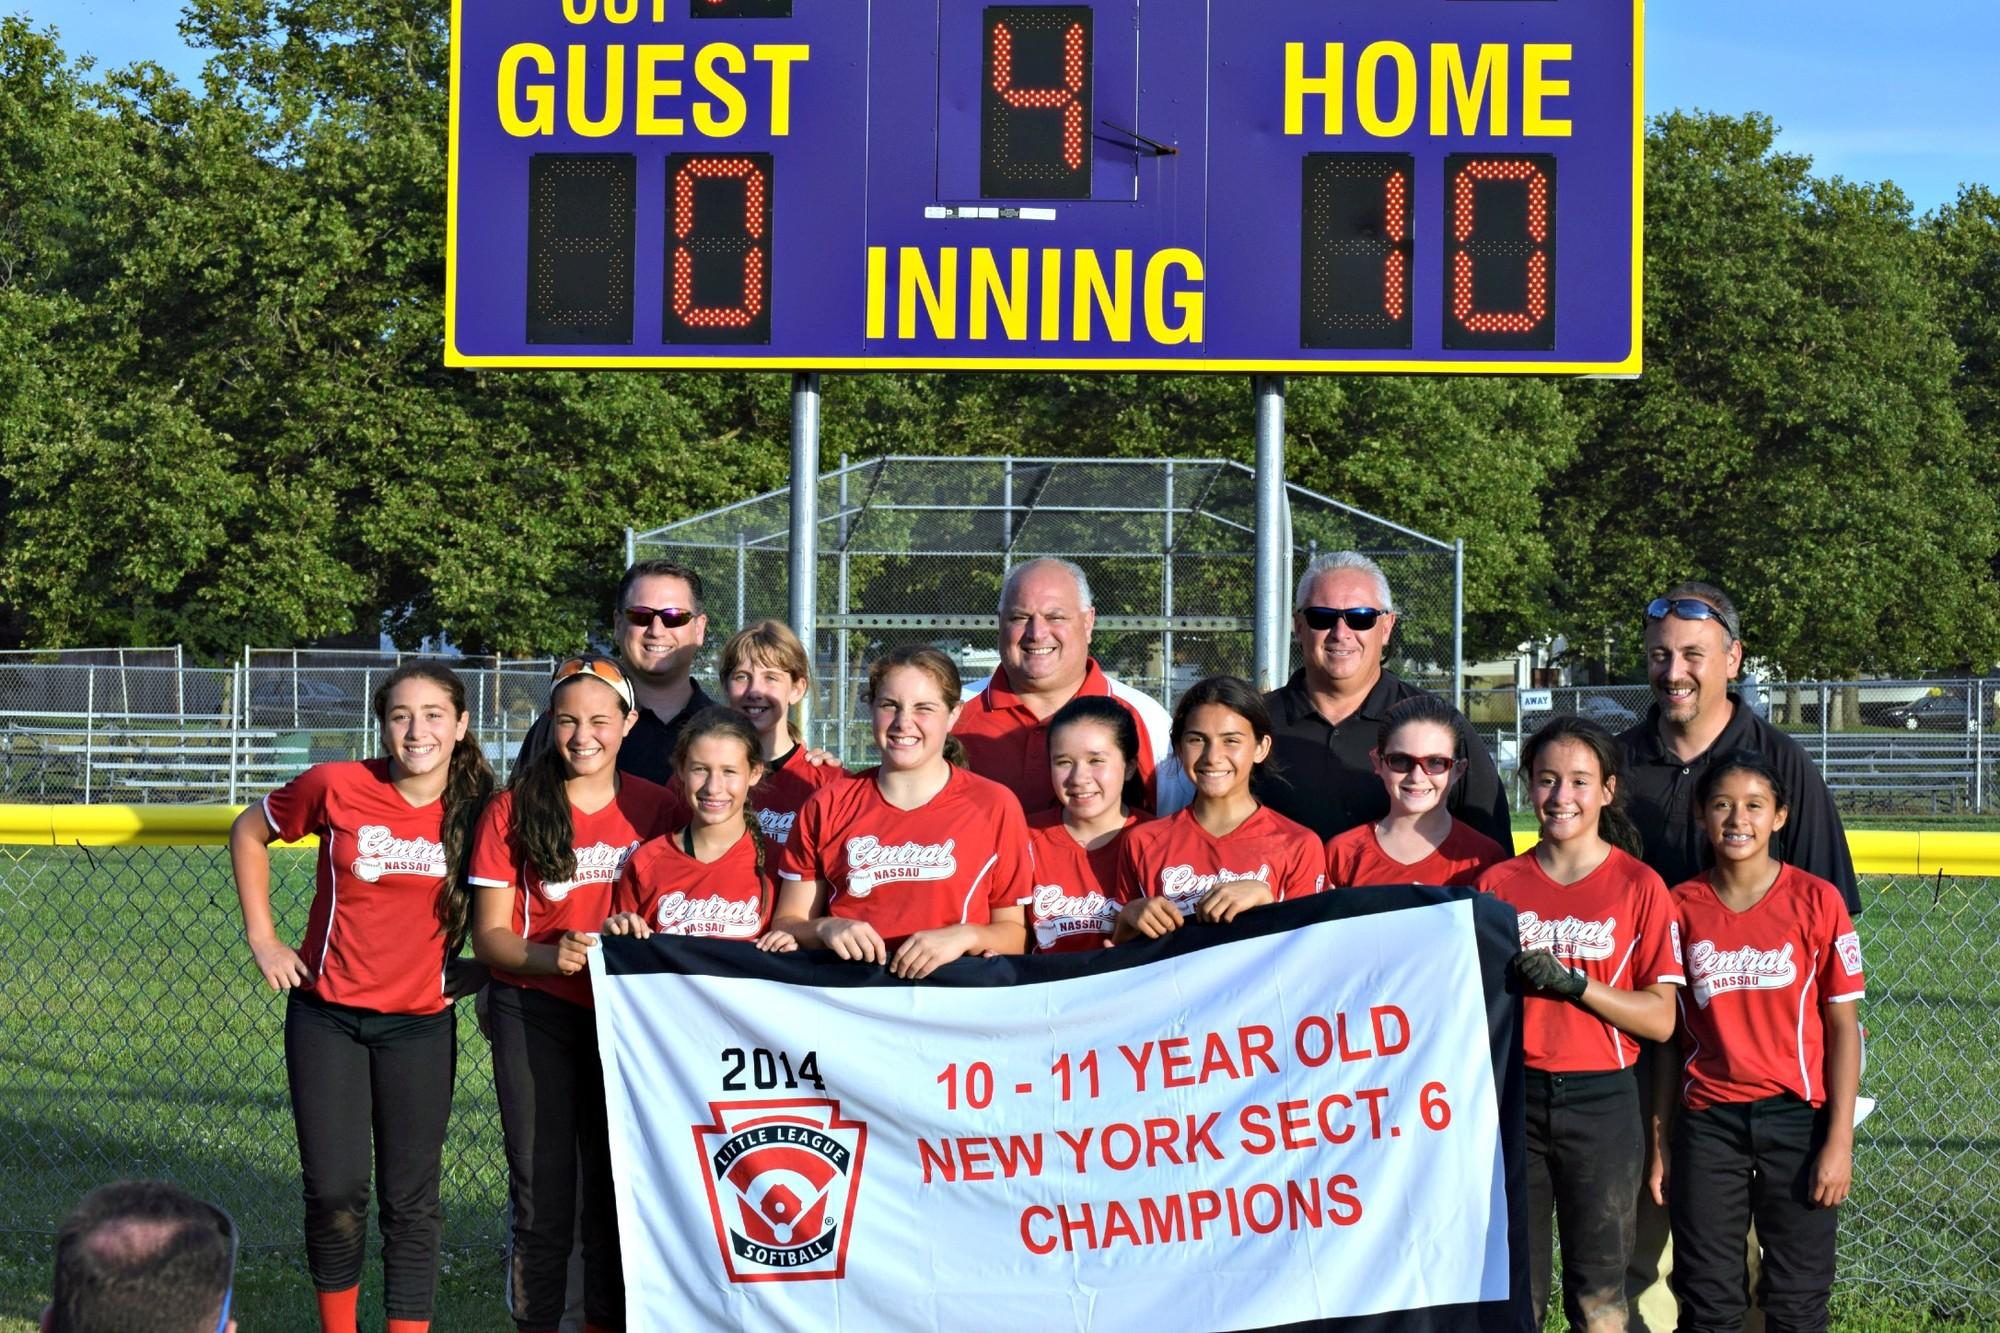 The sectional champion U-11 softball team from the Central Nassau Little League. In front, from left, is Fallon Panzarella, Gab Sferrazza, Toni Ann Servider, Juliana Aloi, Kira Gruber, Mia Biscardi, Kayla Connolly, Brittney Cardona and Sandy Wortman. In back, from left, are Bill Karavias, Alex Karavias, Joe Aloi, Ray Connolly and Sal Sferrazza.